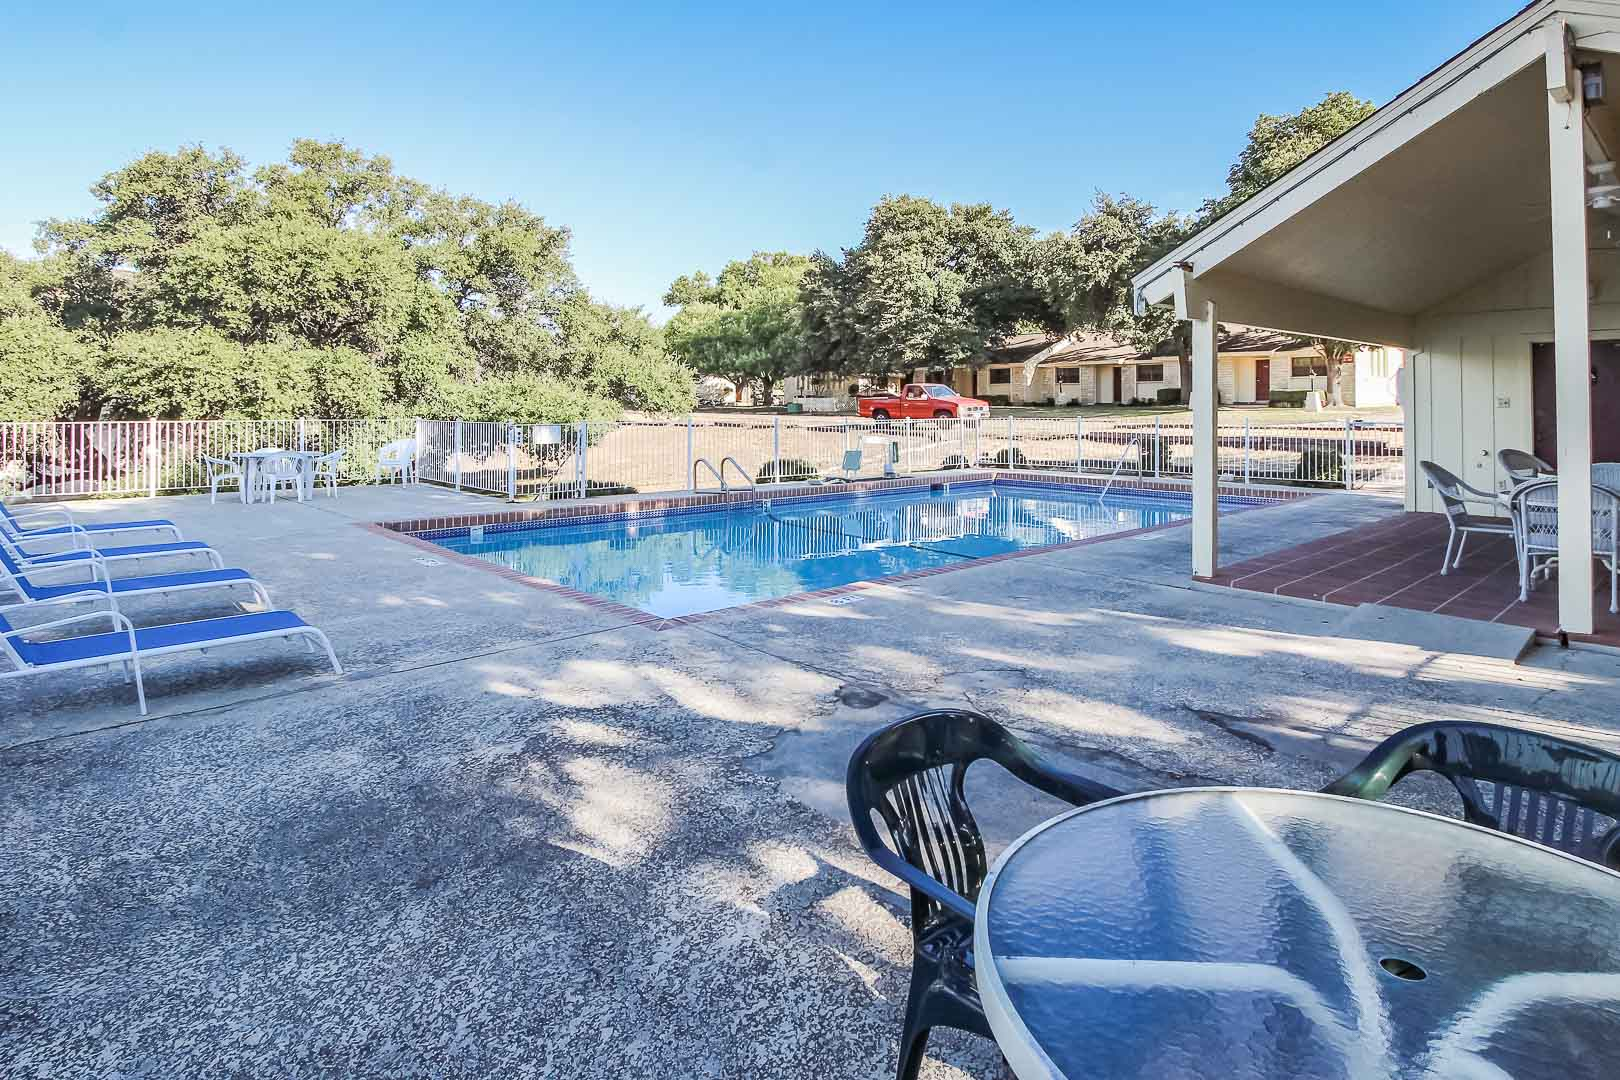 A peaceful outdoor swimming pool  at VRI's Vacation Village at Lake Travis in Texas.